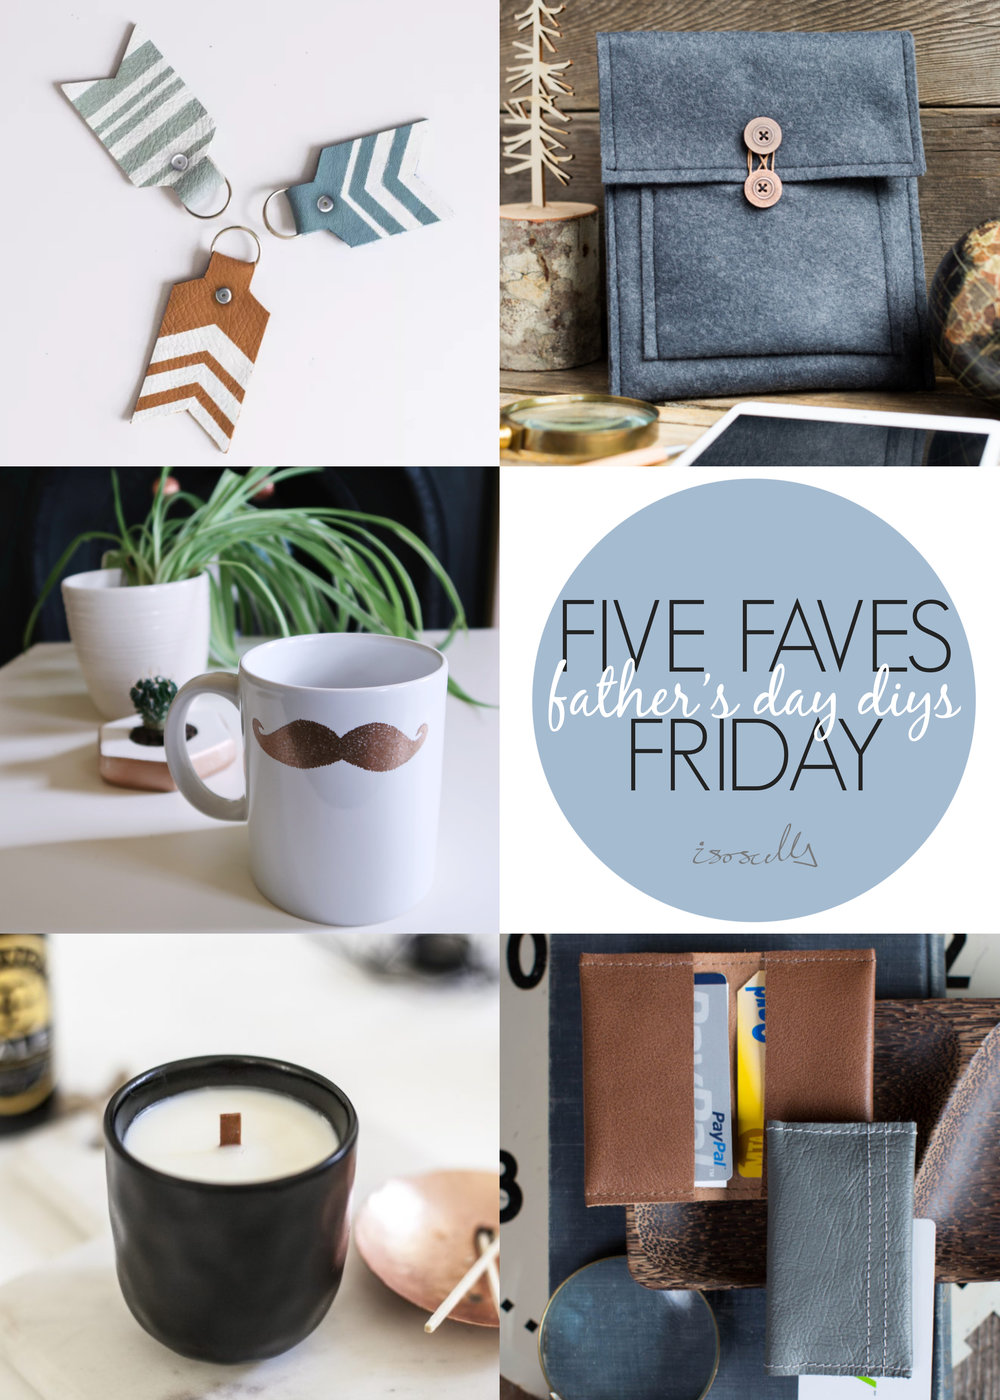 Five Faves Friday - Father's Day DIYs - Isoscella